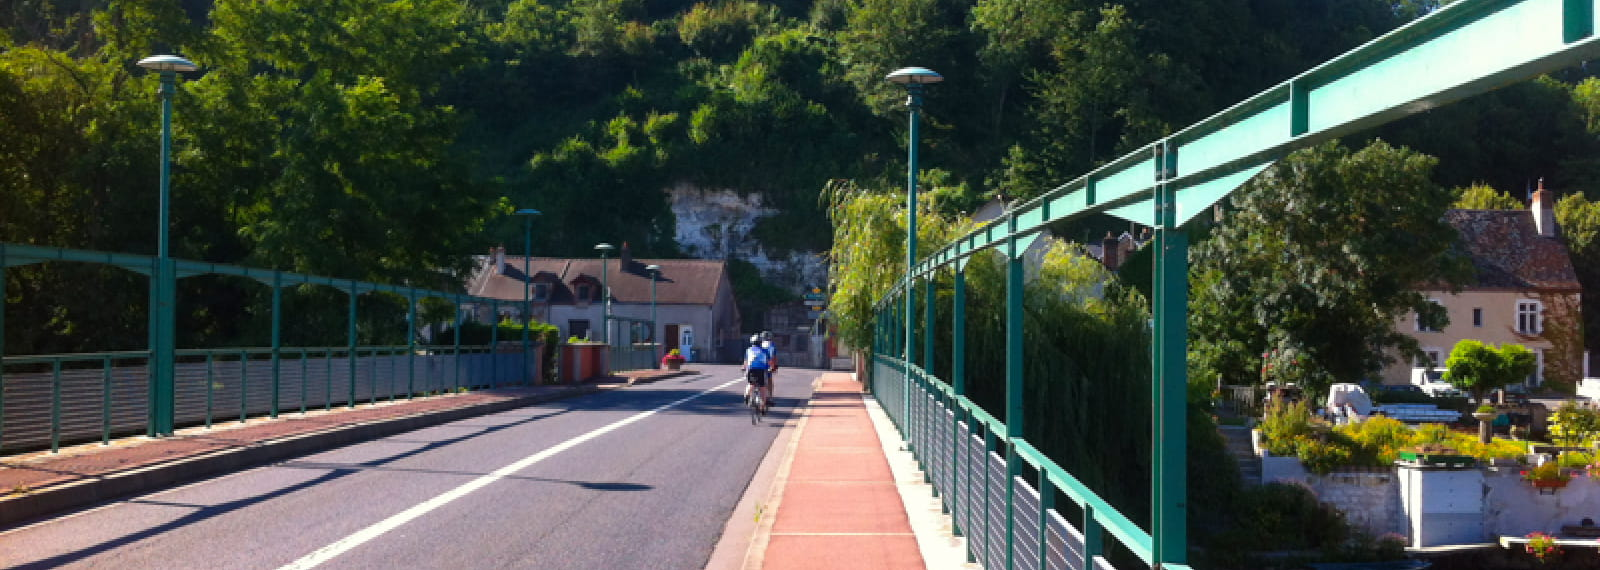 (9)pont-et-ruines-freteval©CDT41-ycouty